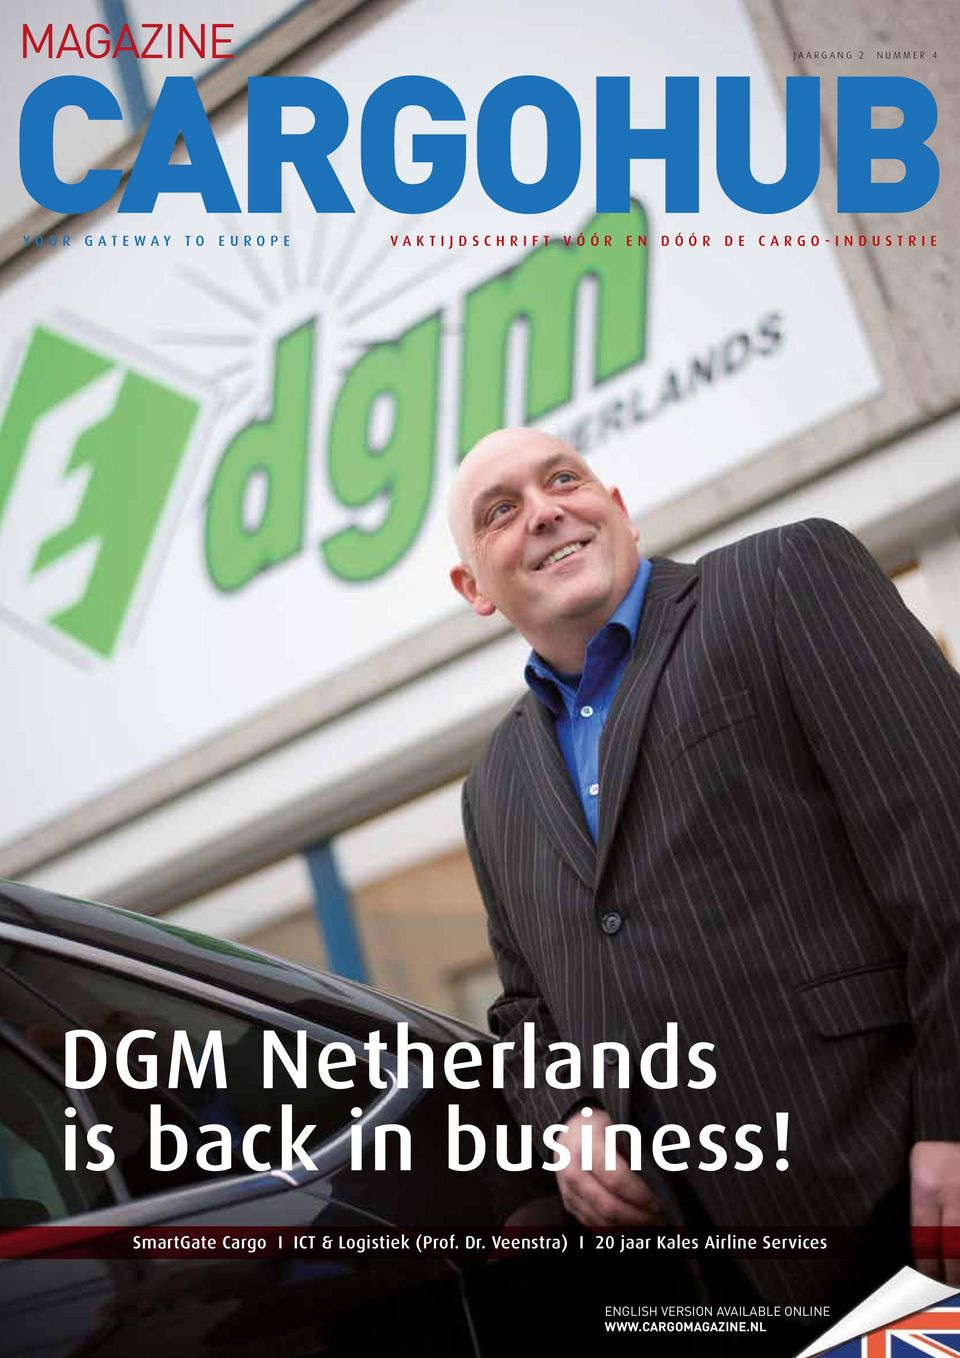 DGM Netherlands is back in business!